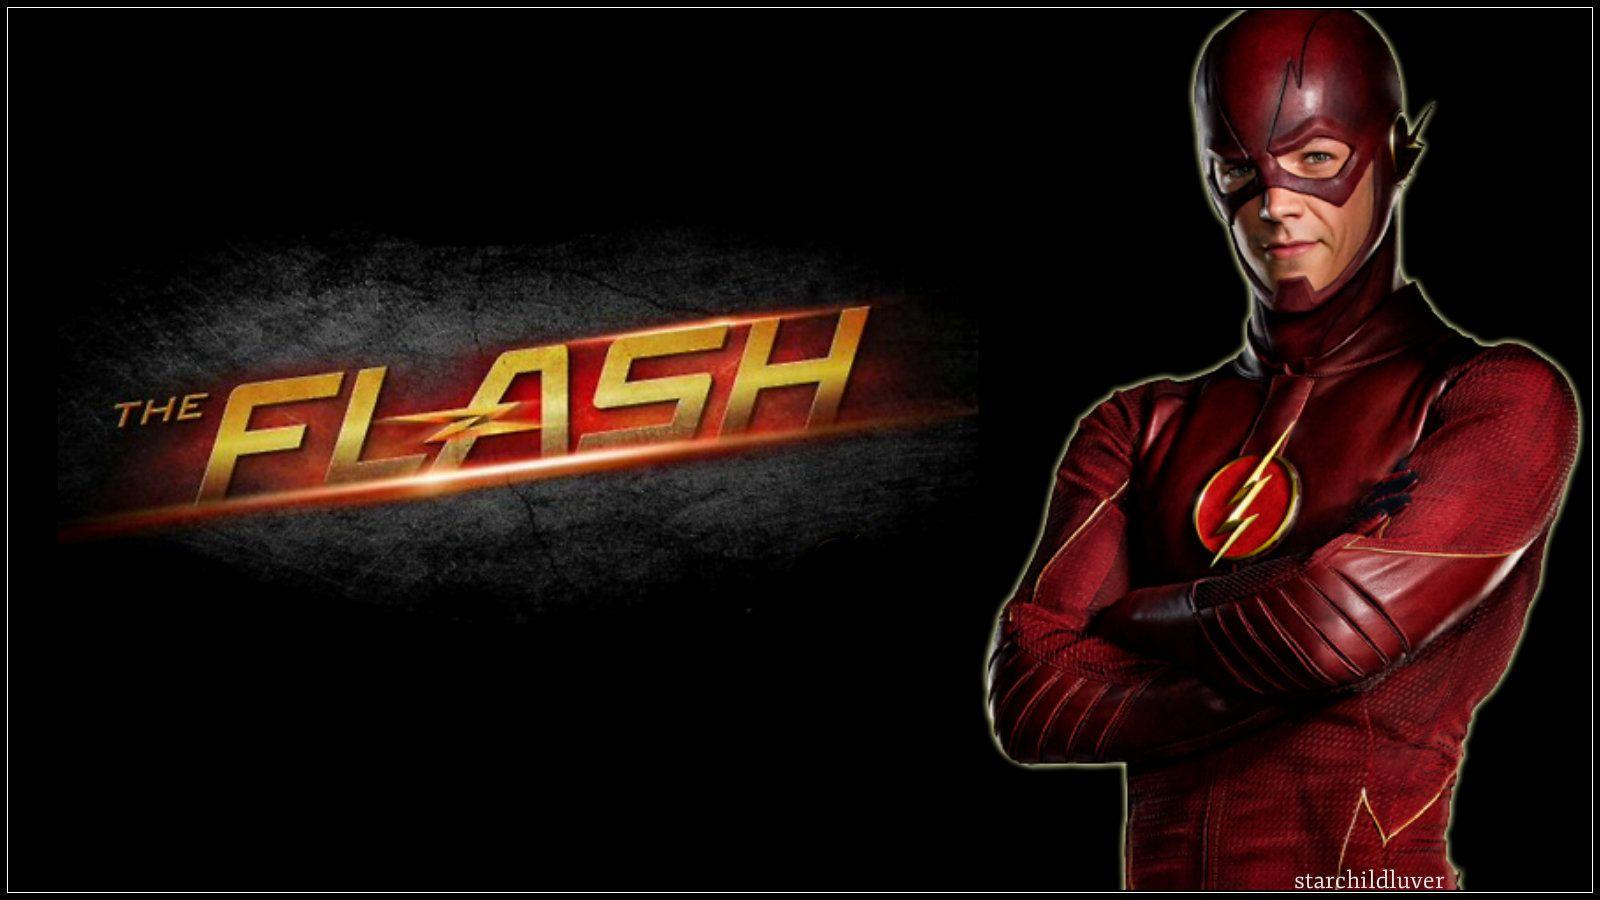 the flash wallpapers pictures, images High Quality